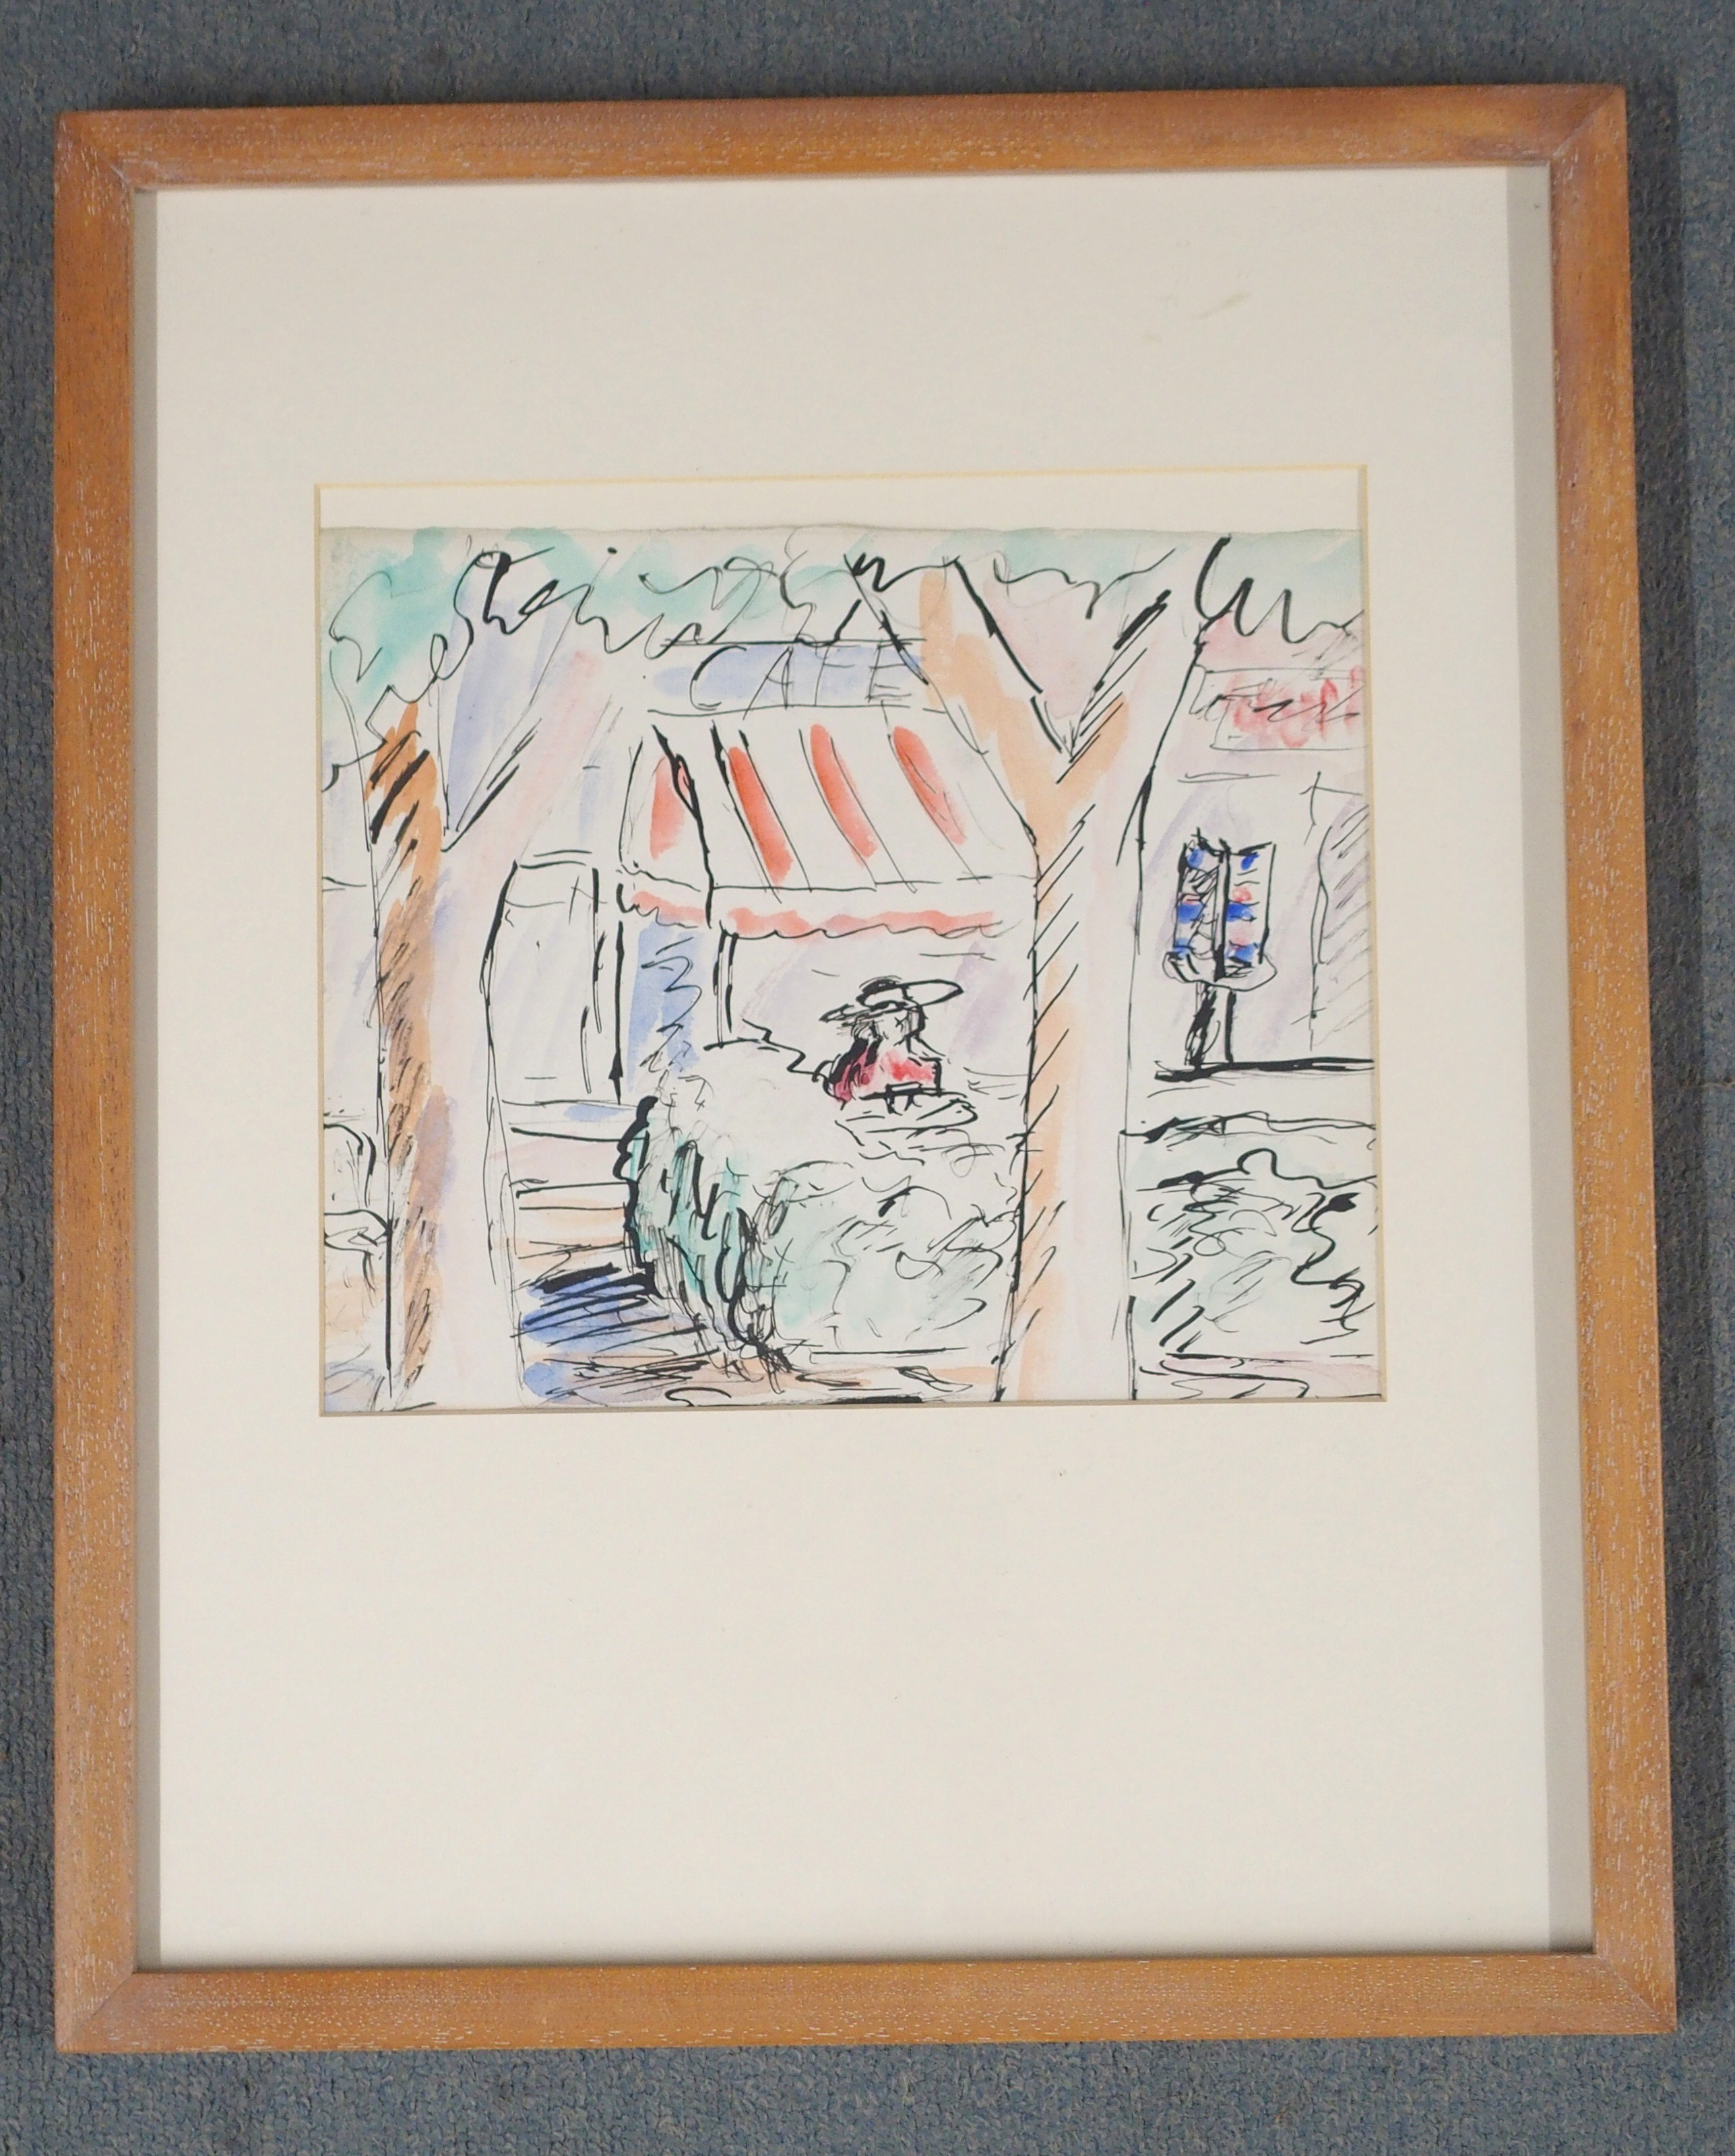 •DONALD BAIN (SCOTTISH 1904-1979) THE CAFE, ST. PAUL DE VENCE Ink and watercolour on paper, 25 x - Image 2 of 3